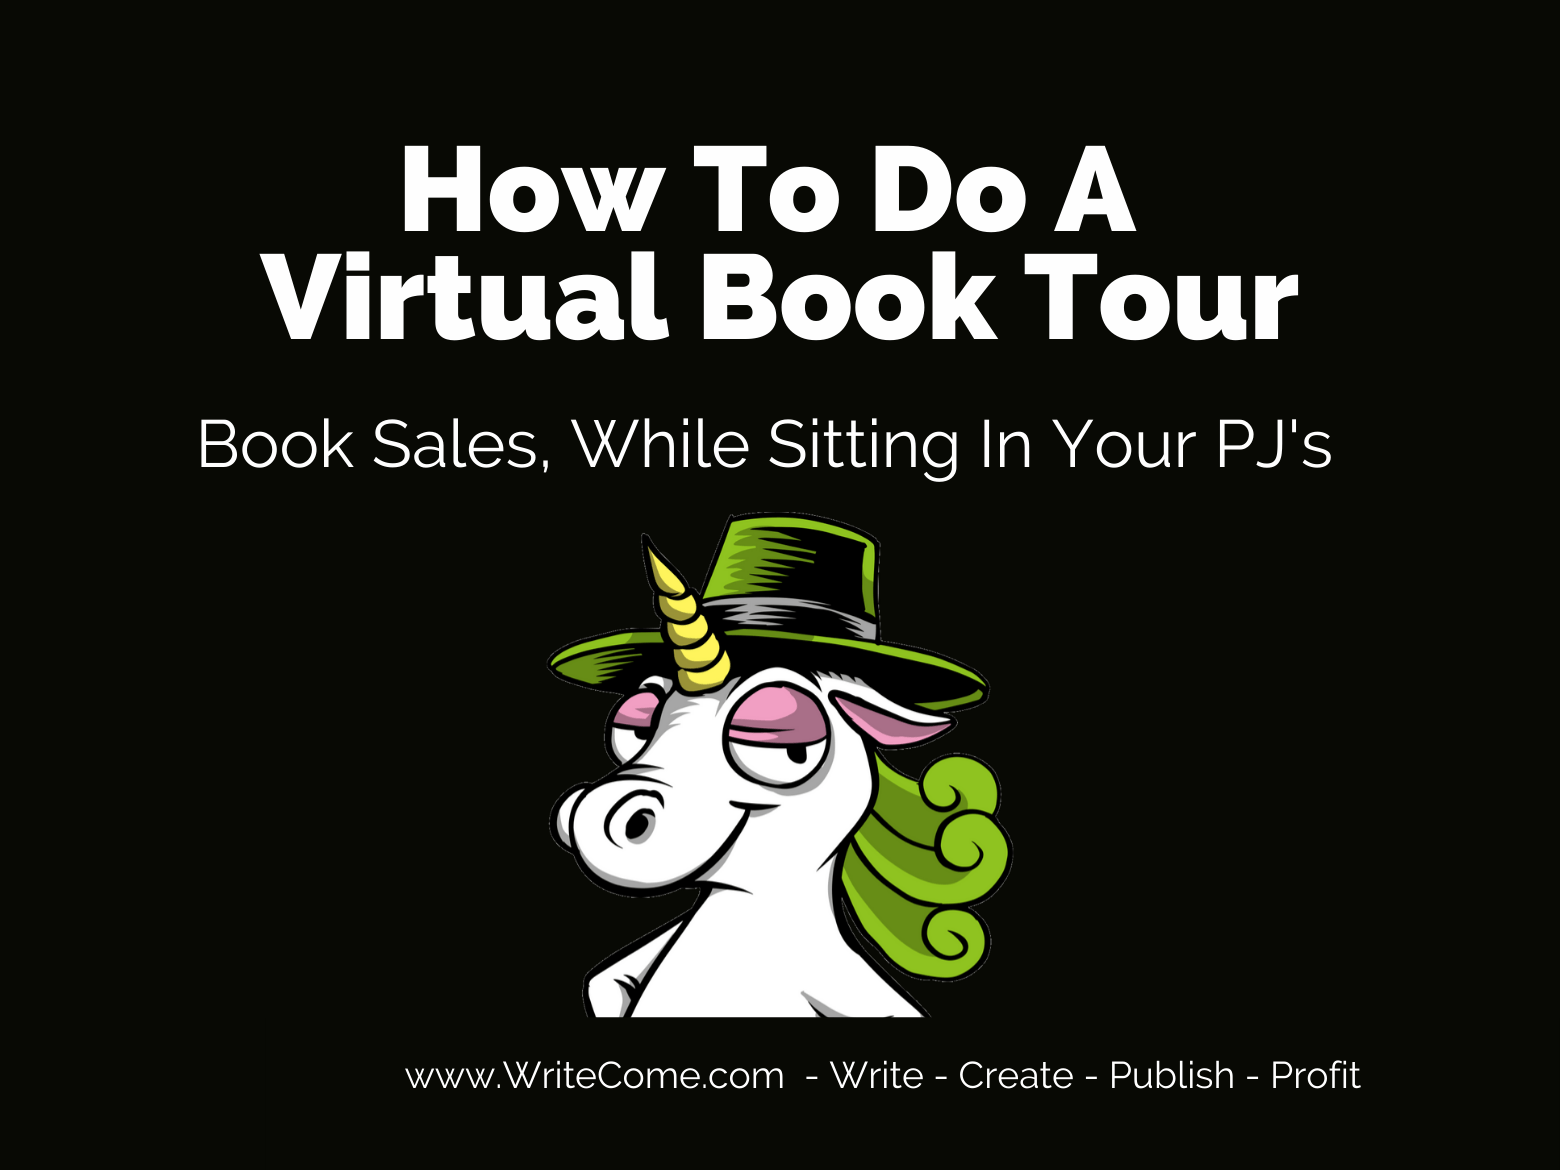 How To Do A Virtual Book Tour